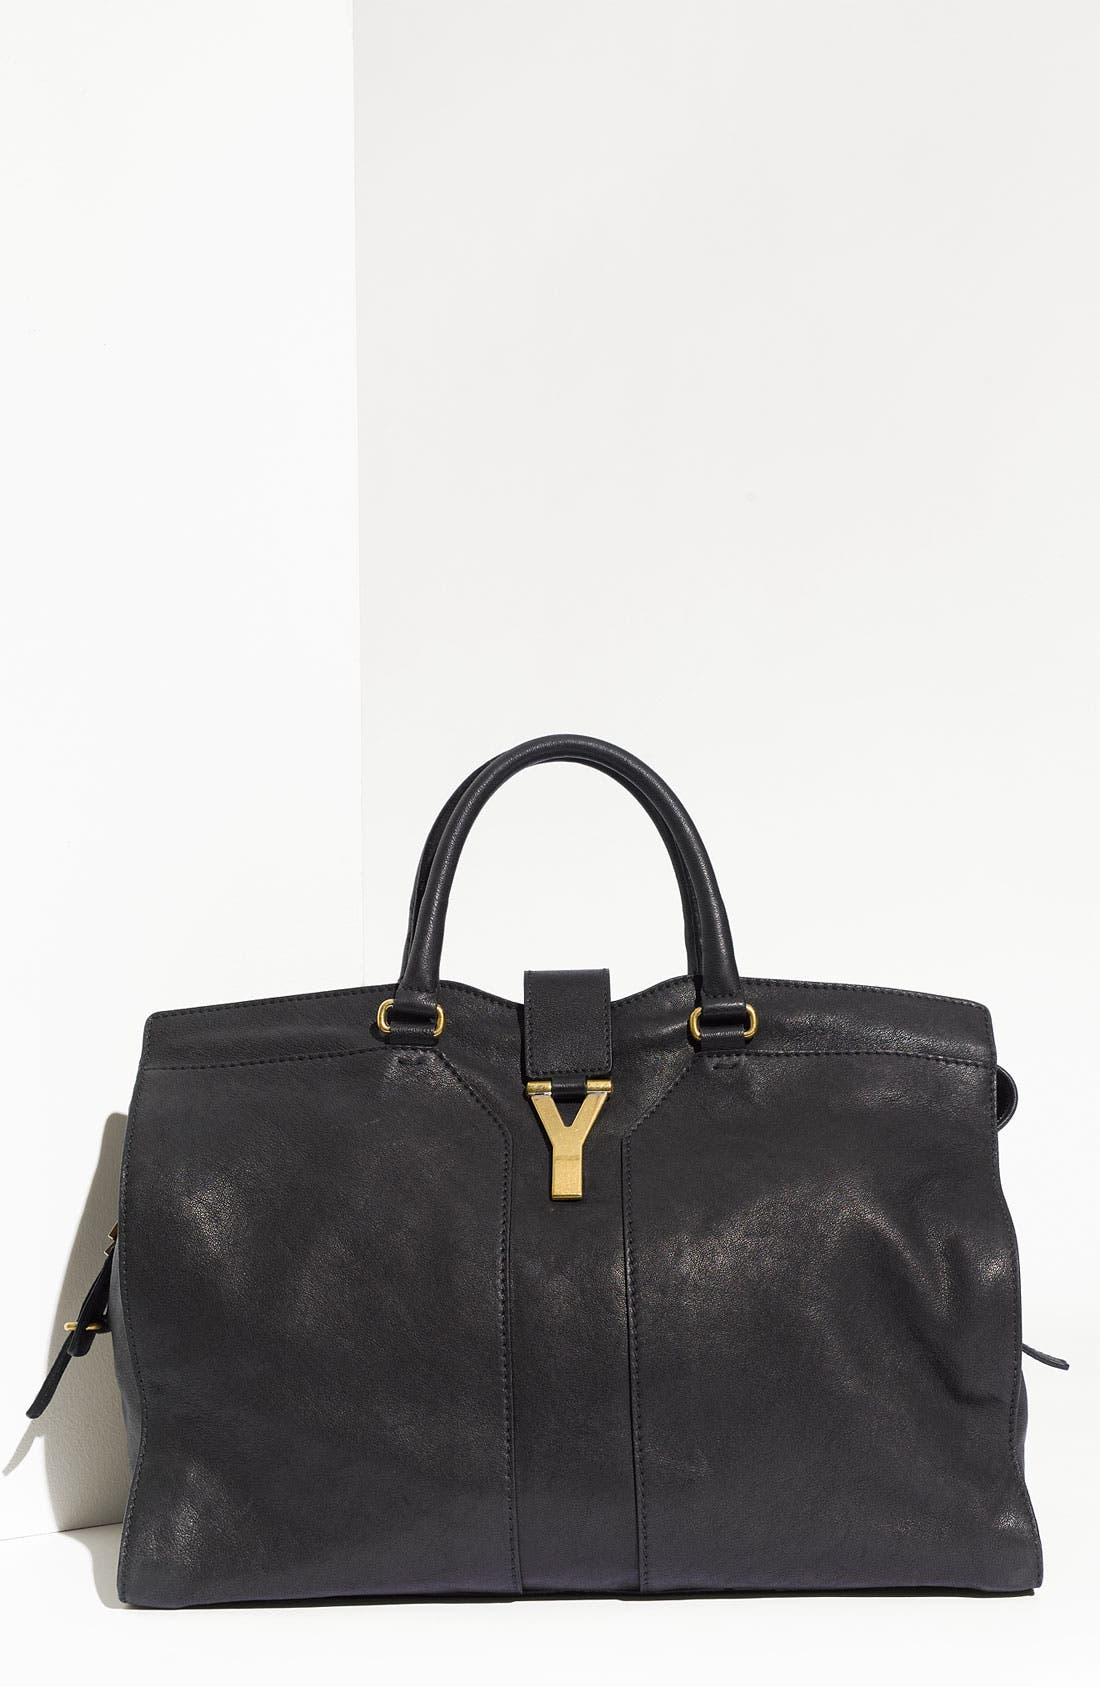 Alternate Image 1 Selected - Yves Saint Laurent Paris 'Cabas Chyc - Large' Leather Satchel